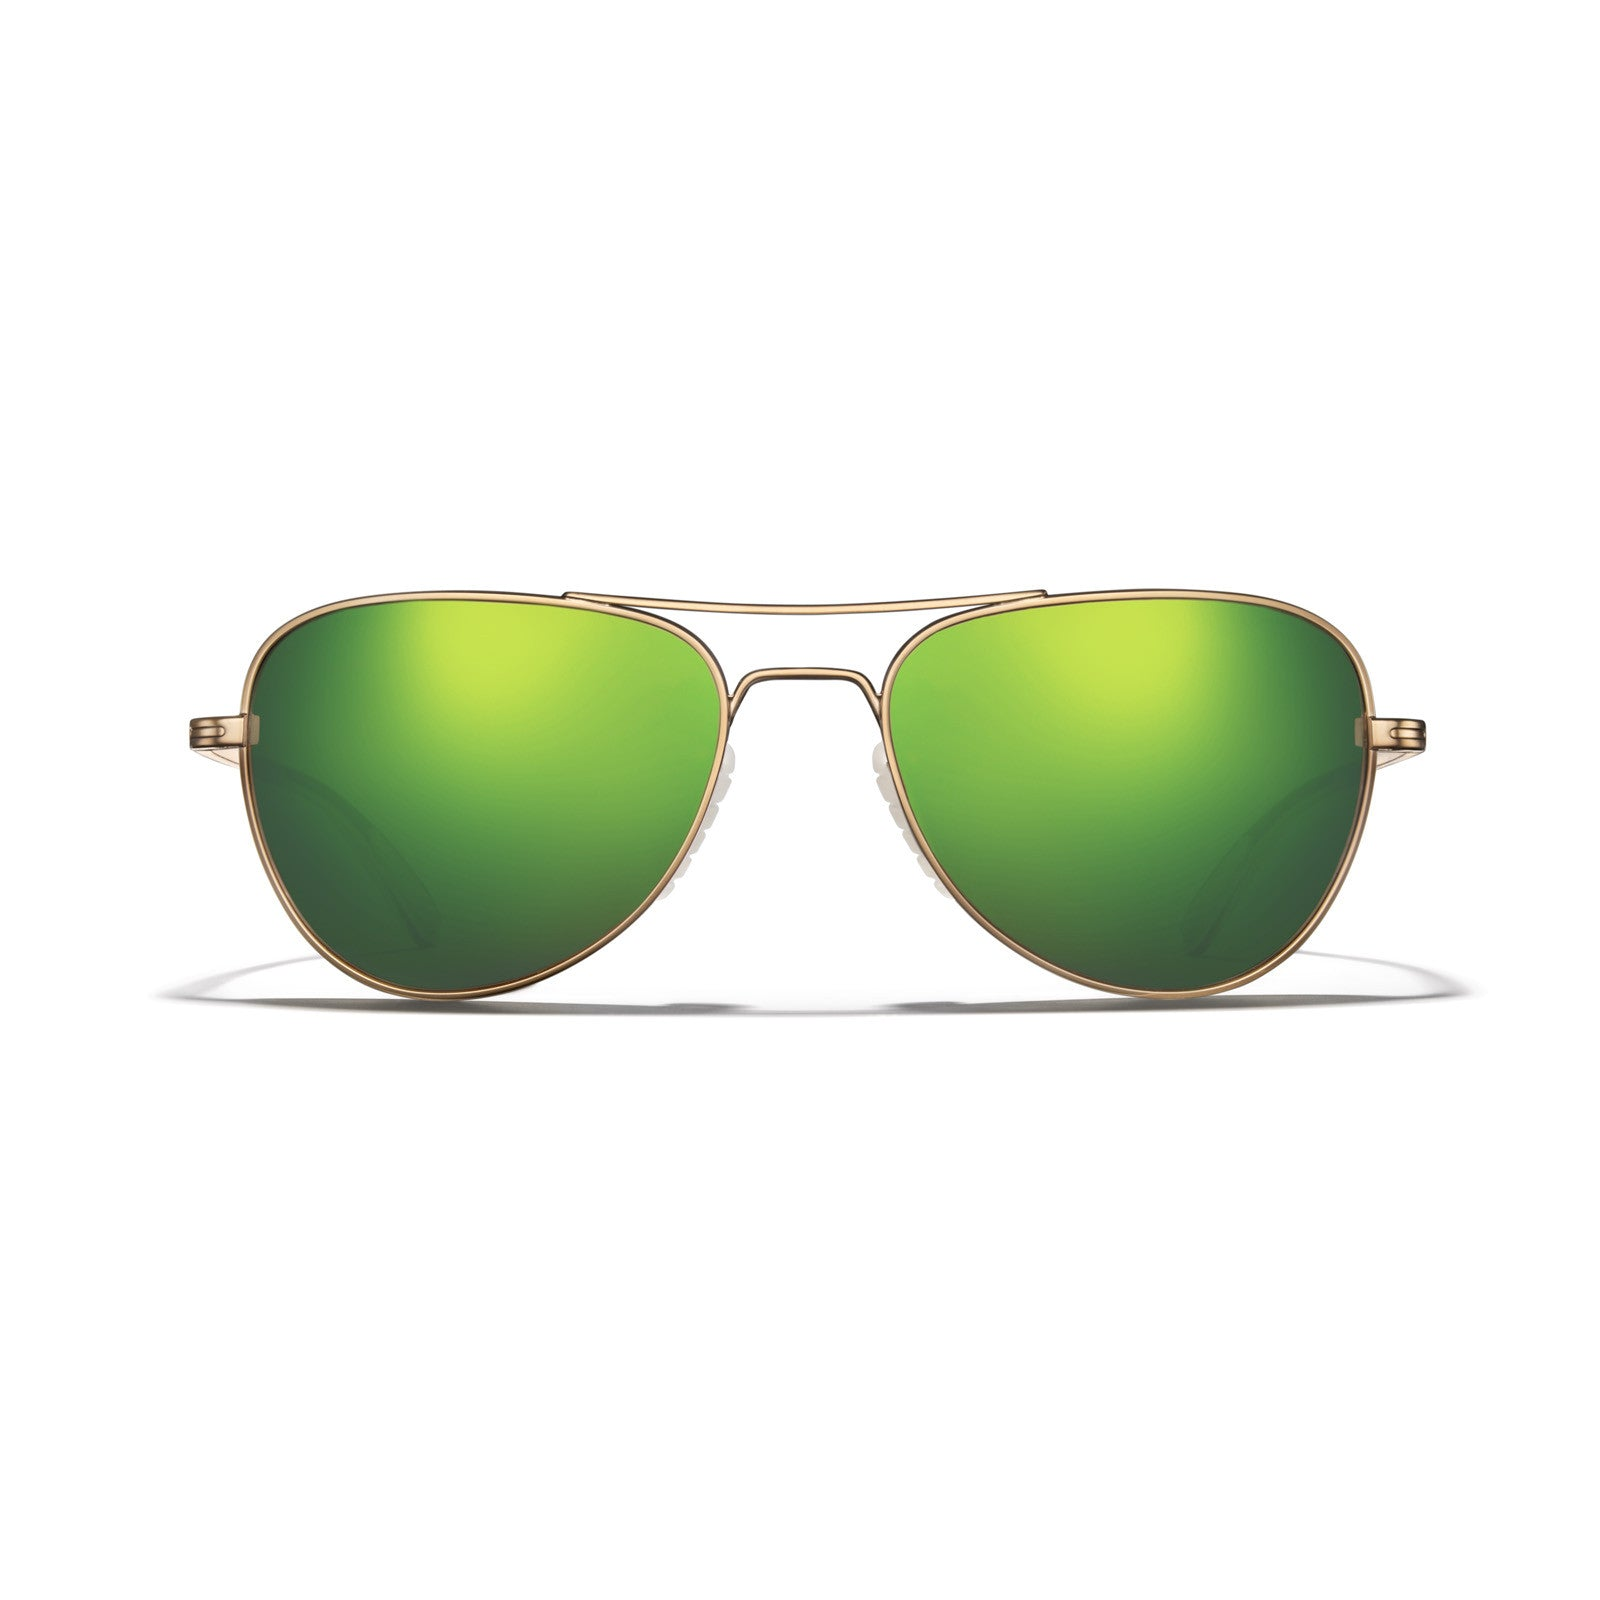 Gold Frame - Bronze Lens with Green Mirror